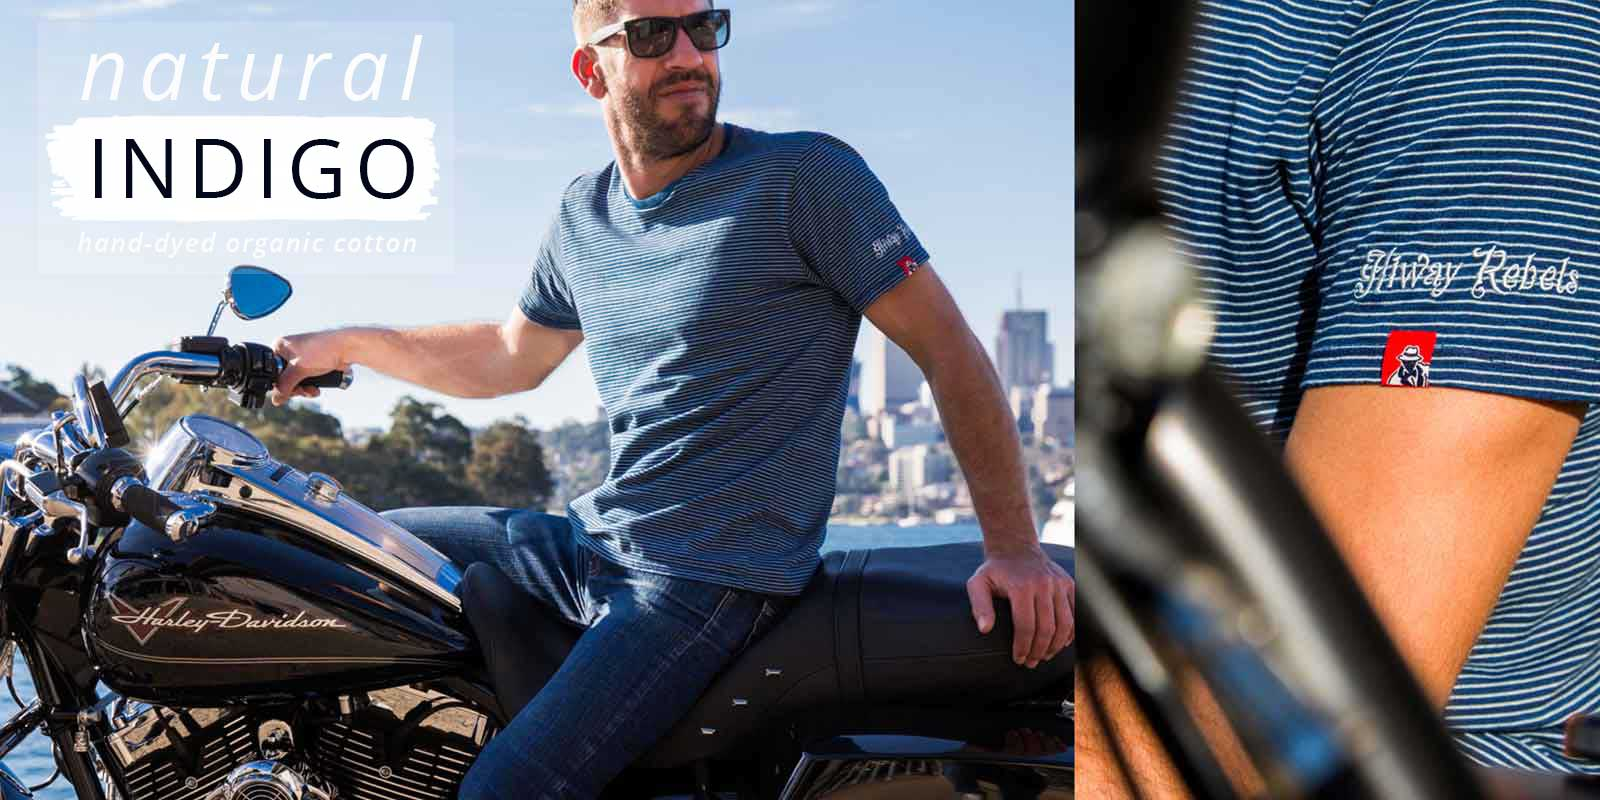 Man on Harley Davidson wearing Indigo Couture horizontal stripped navy and white Hiway Rebel t-shirt.